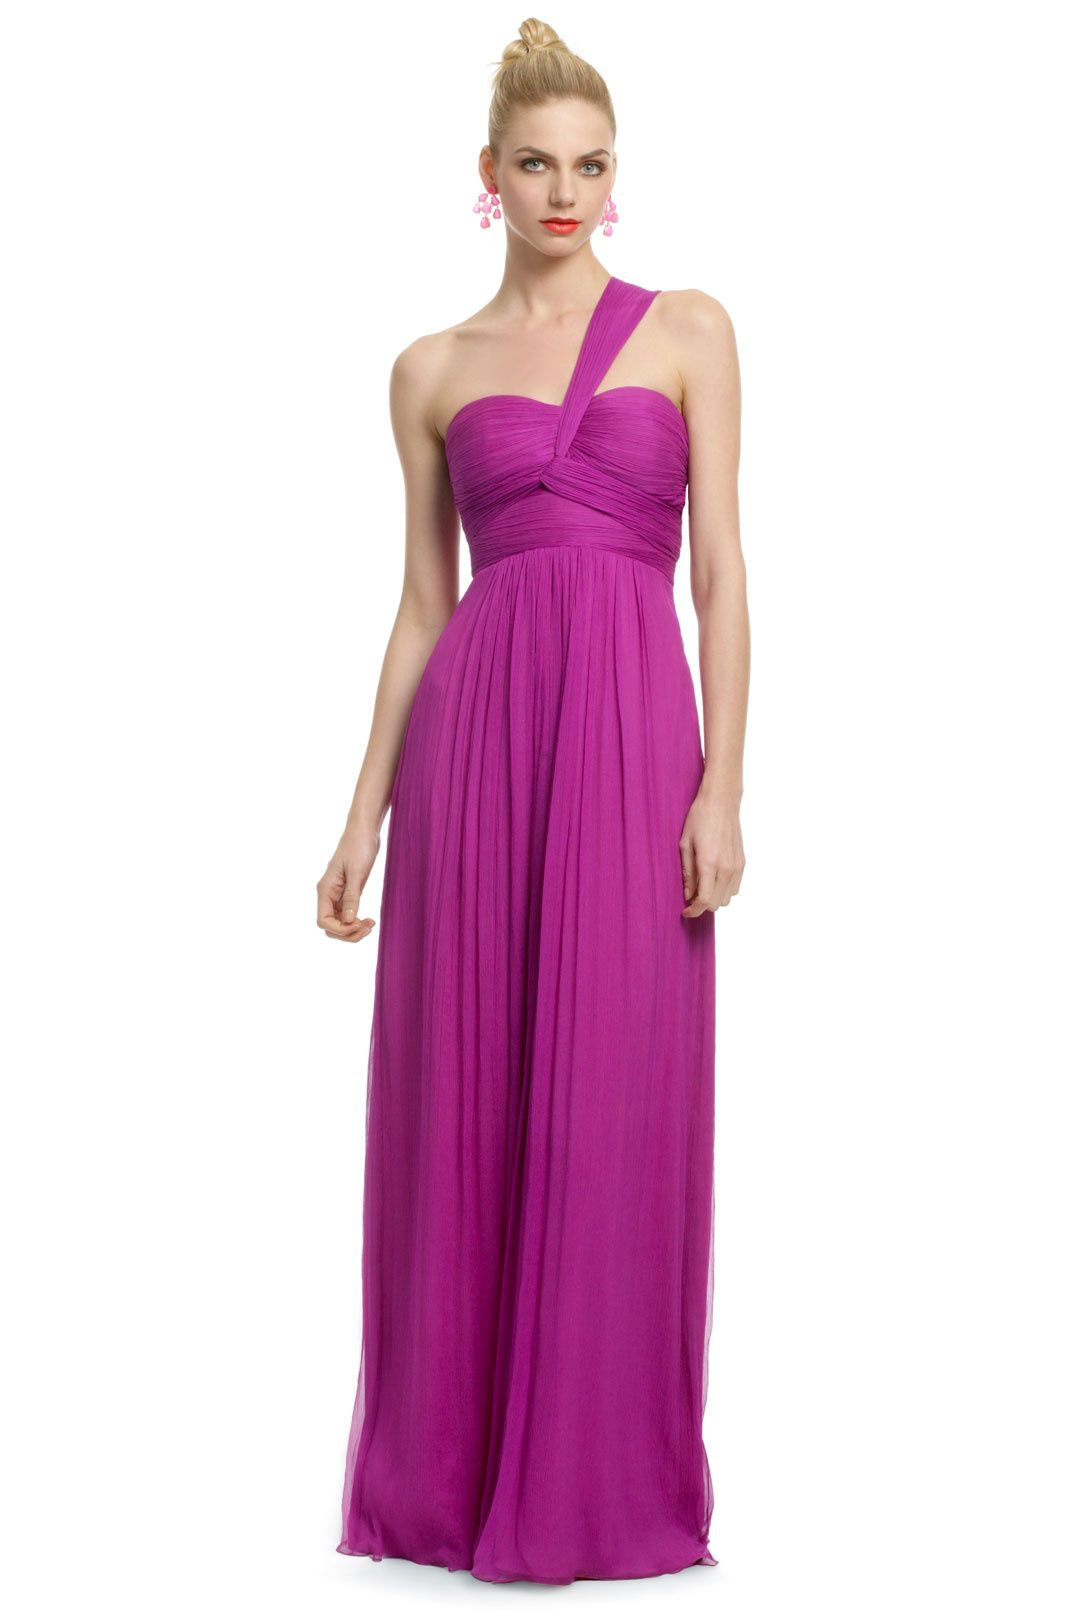 Magenta Orchid Gown | Gowns, Prom and Dress ideas